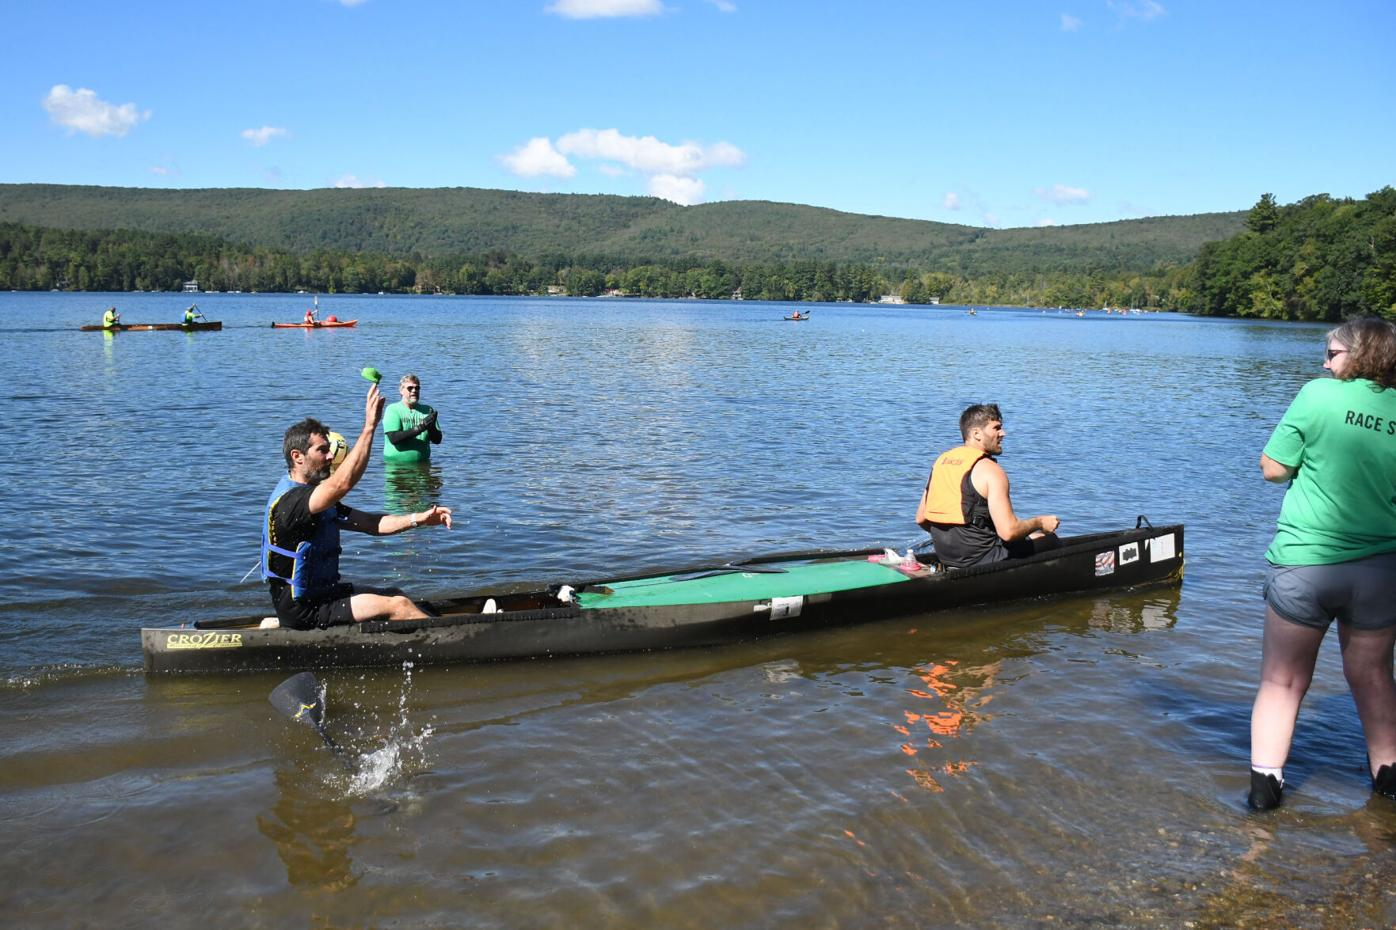 First-place paddlers toss their wristband to their runner